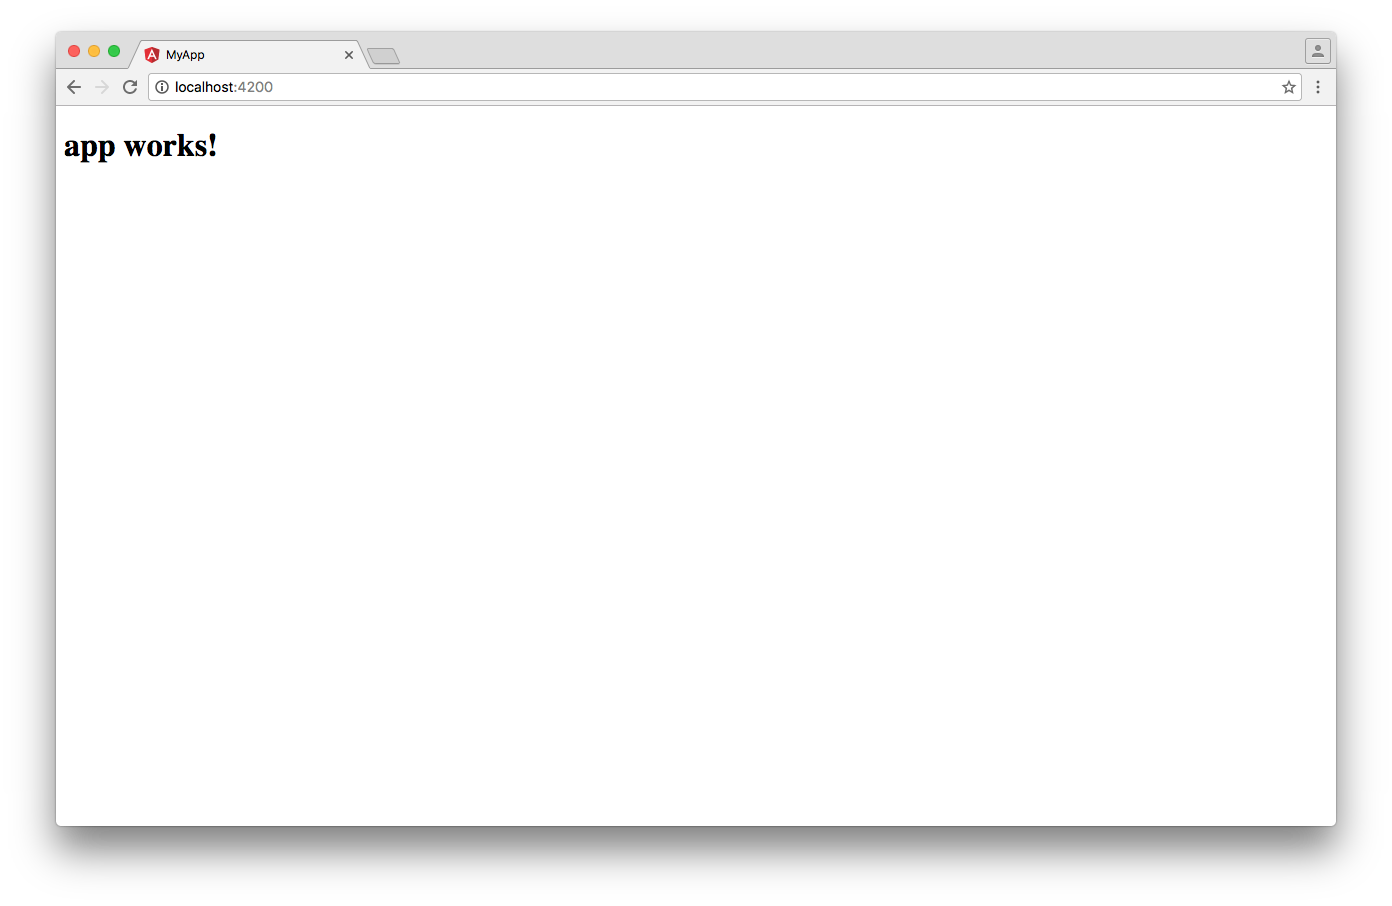 Angular CLI: Screenshot of the app running in the browser, displaying the text 'app works!'